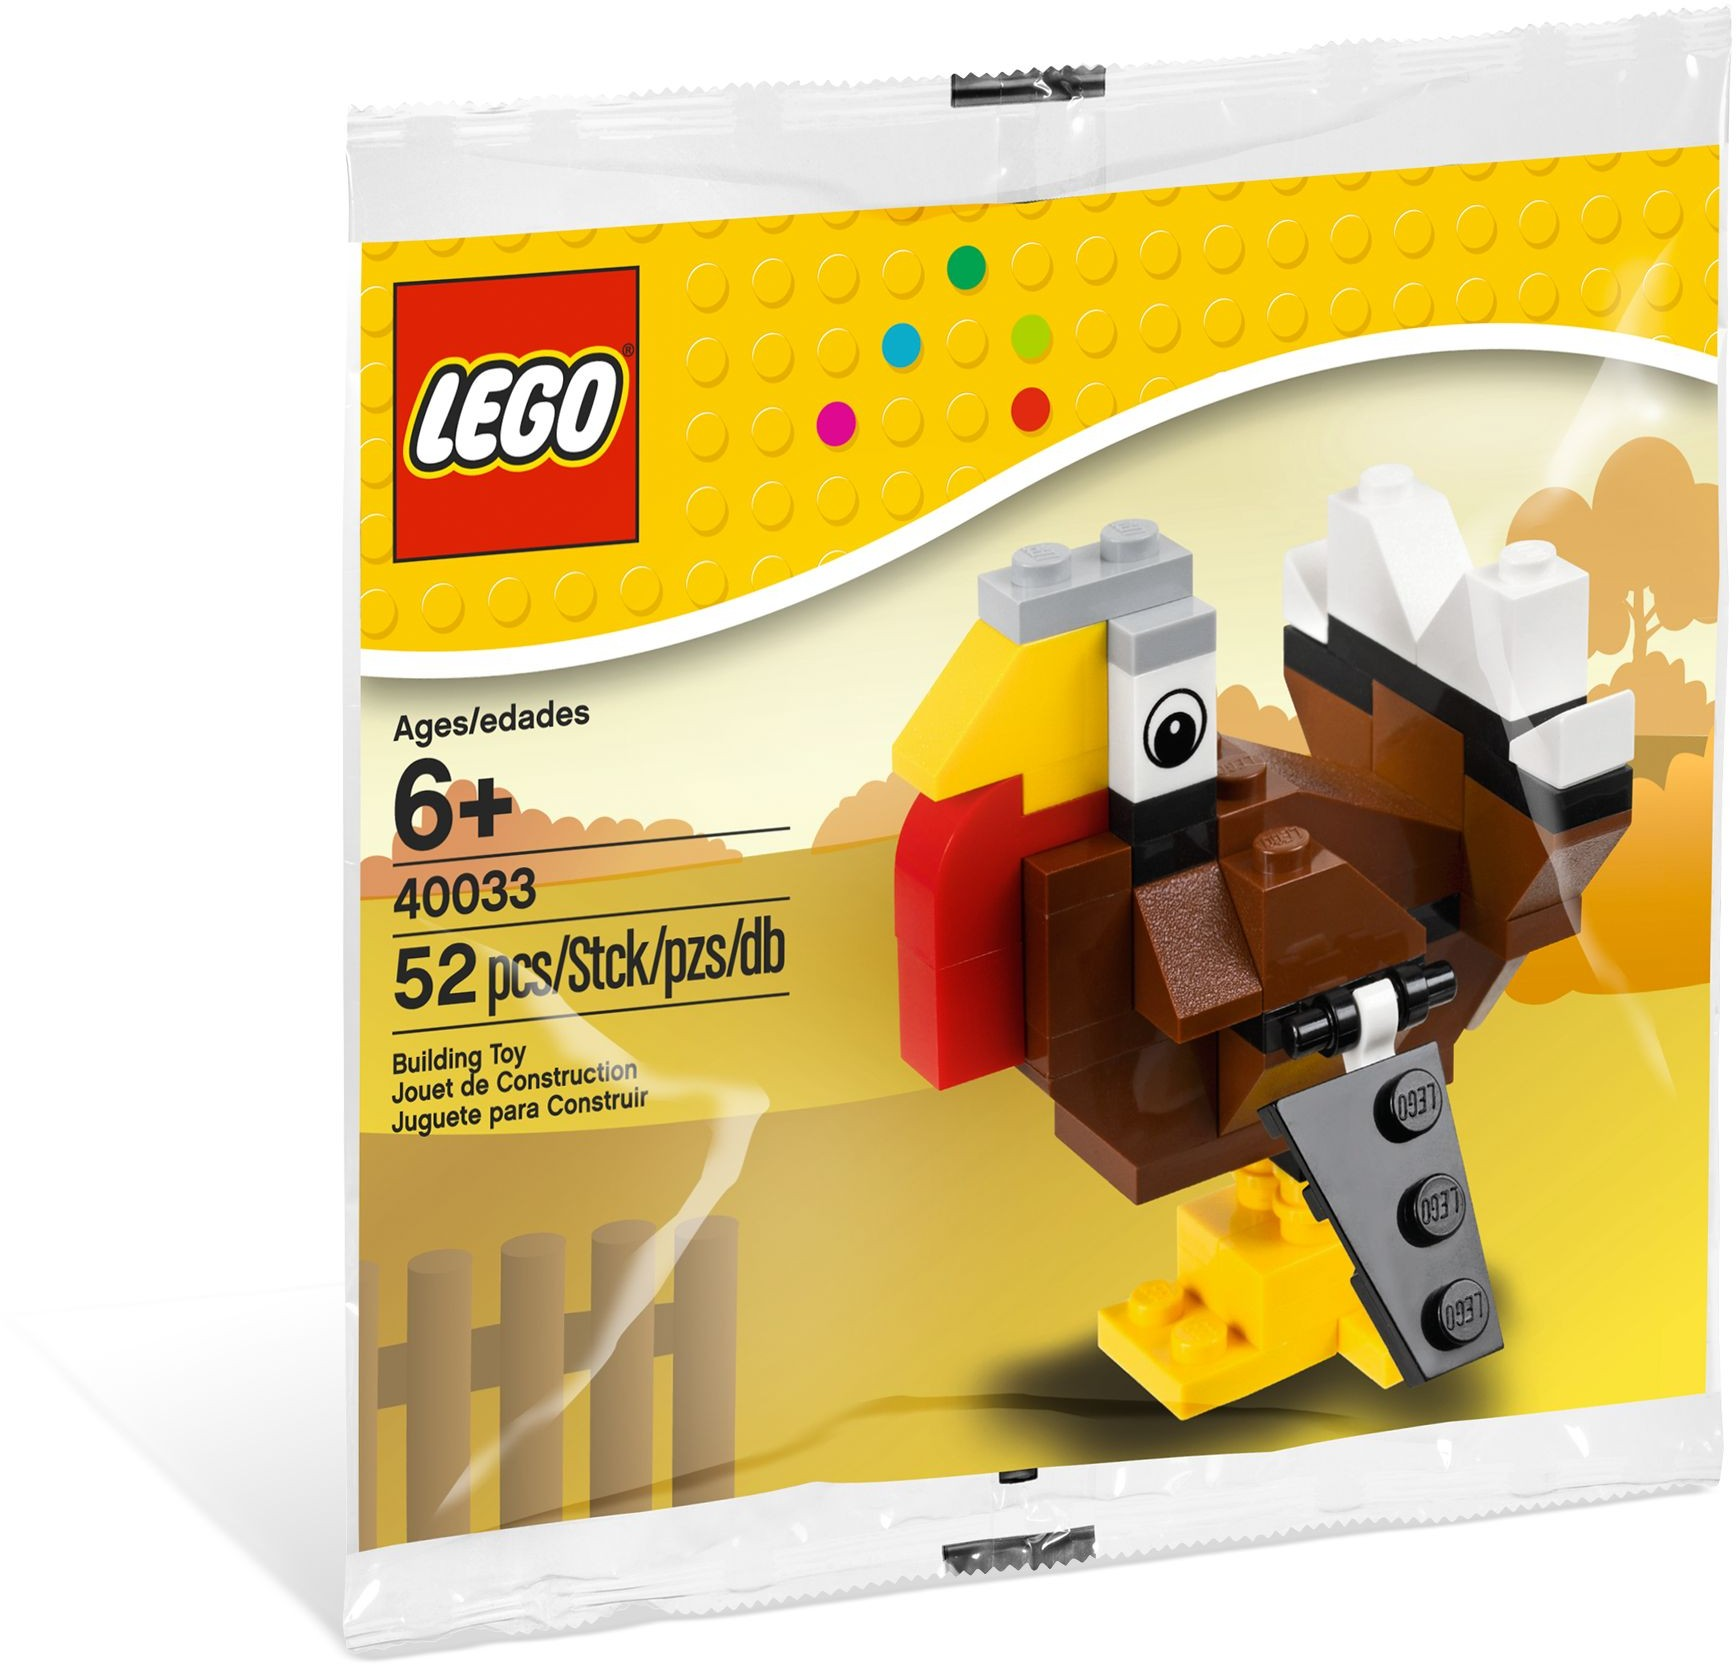 LEGO 40033 - Polybag - Turkey